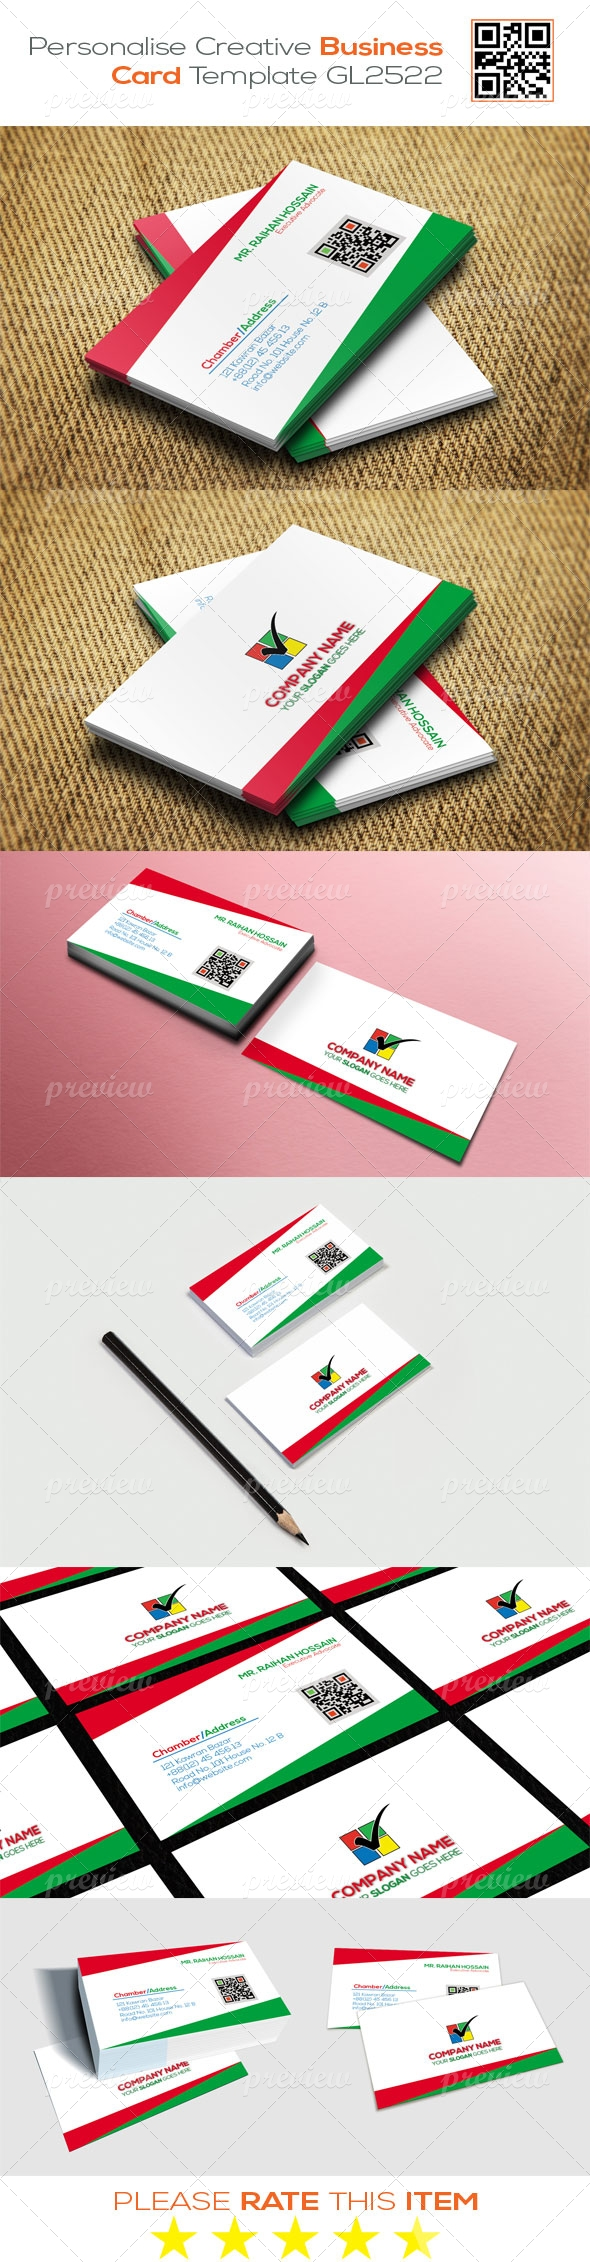 Personalise Creative Business Card Template GL2522